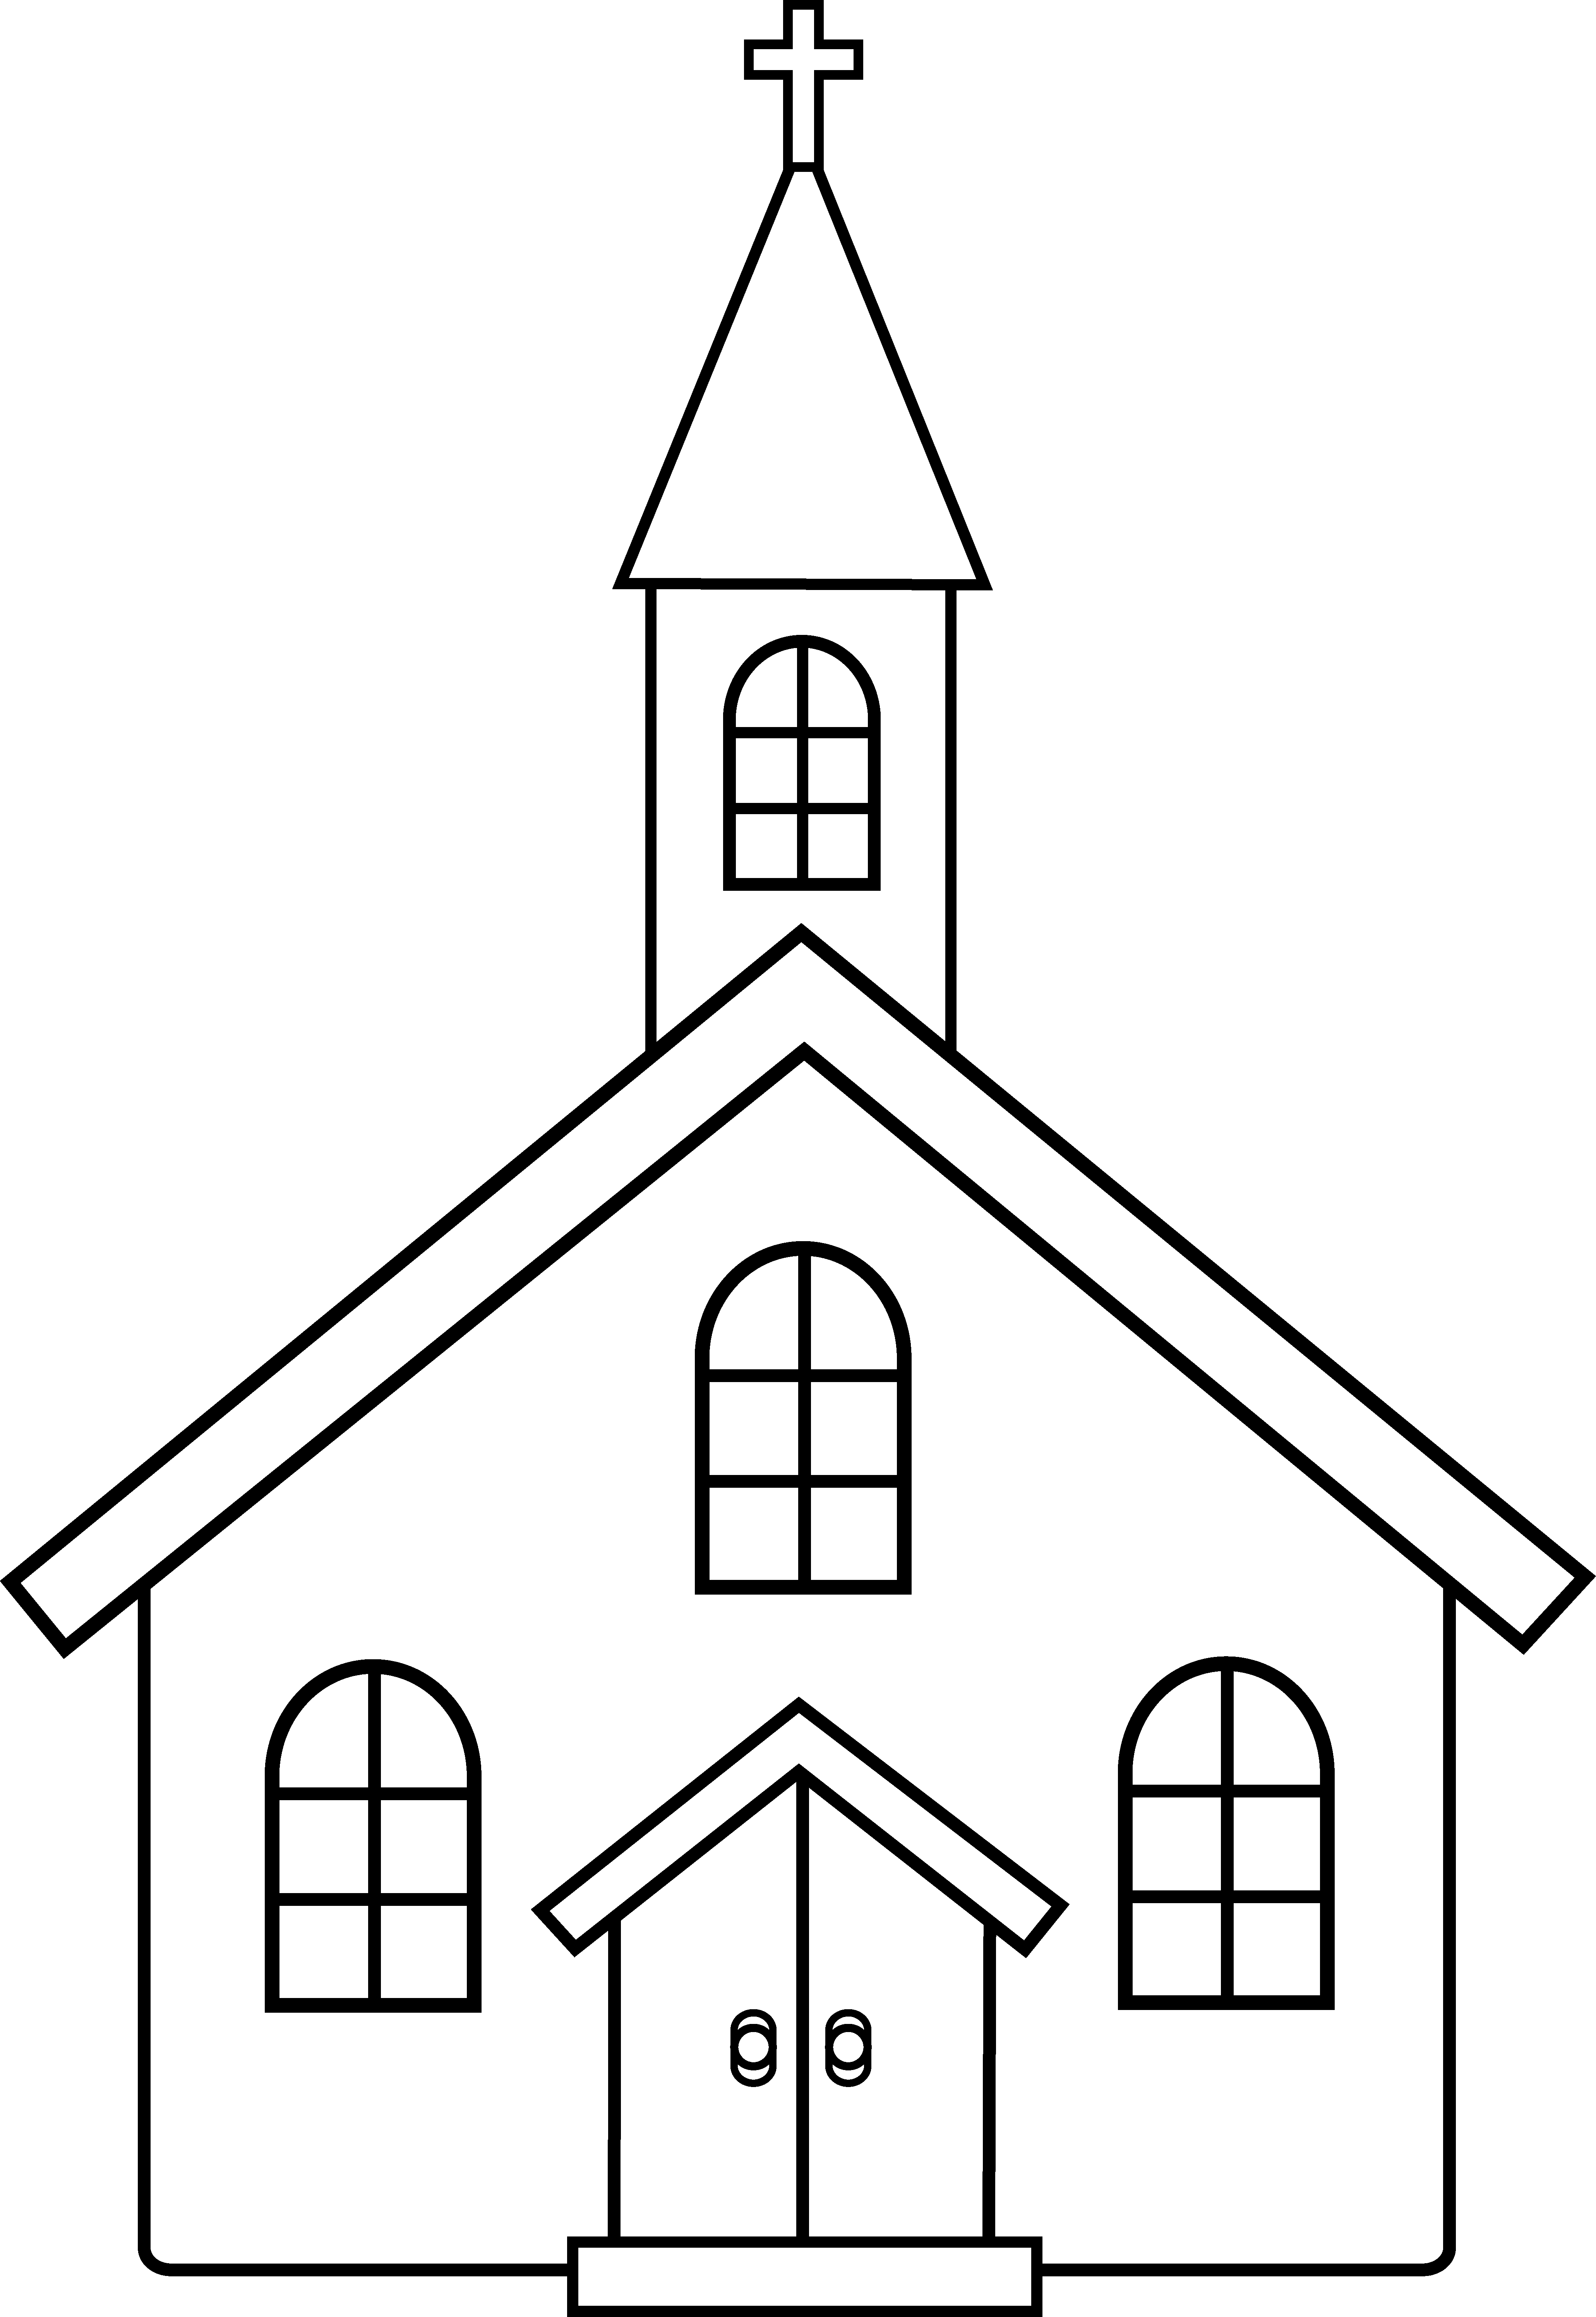 Free Church Building Cliparts, Download Free Clip Art, Free.